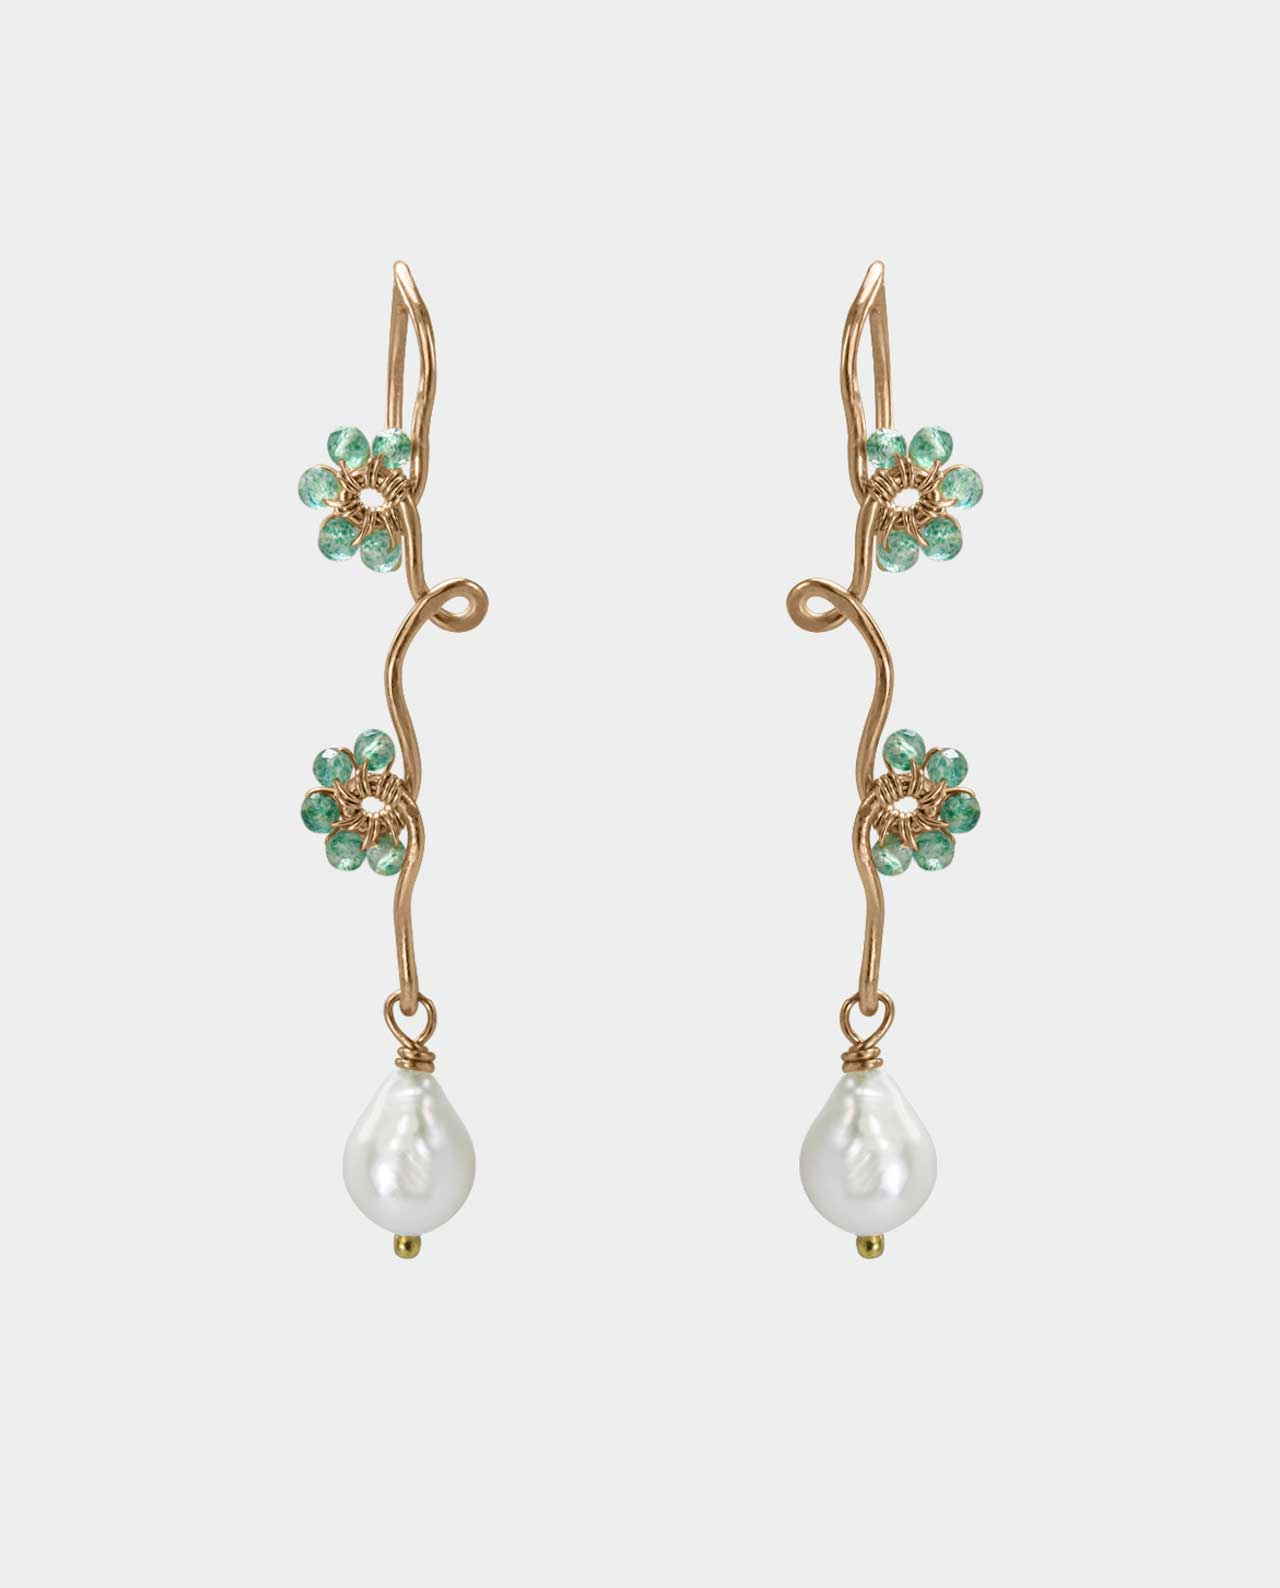 Organically designed earring with green onyx and white freshwater pearls in its own beautiful story so the piece of jewelry becomes a tribute to women who adorn themselves with natural gemstones and hand-made jewels